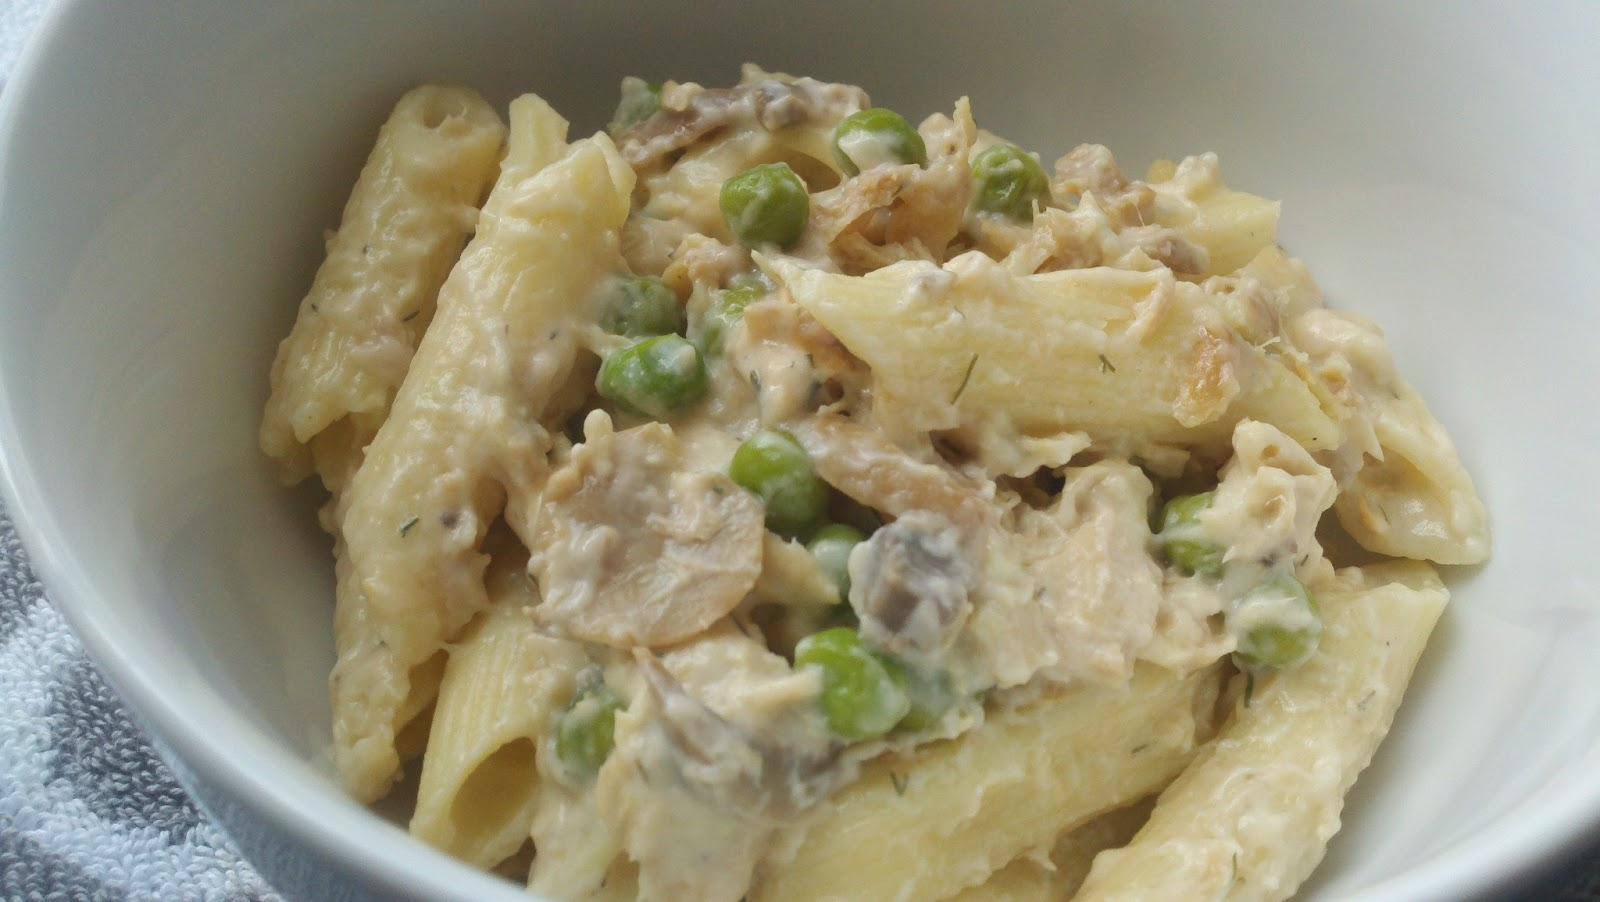 L c k cafe tuna noodle casserole for Tuna fish casserole recipe